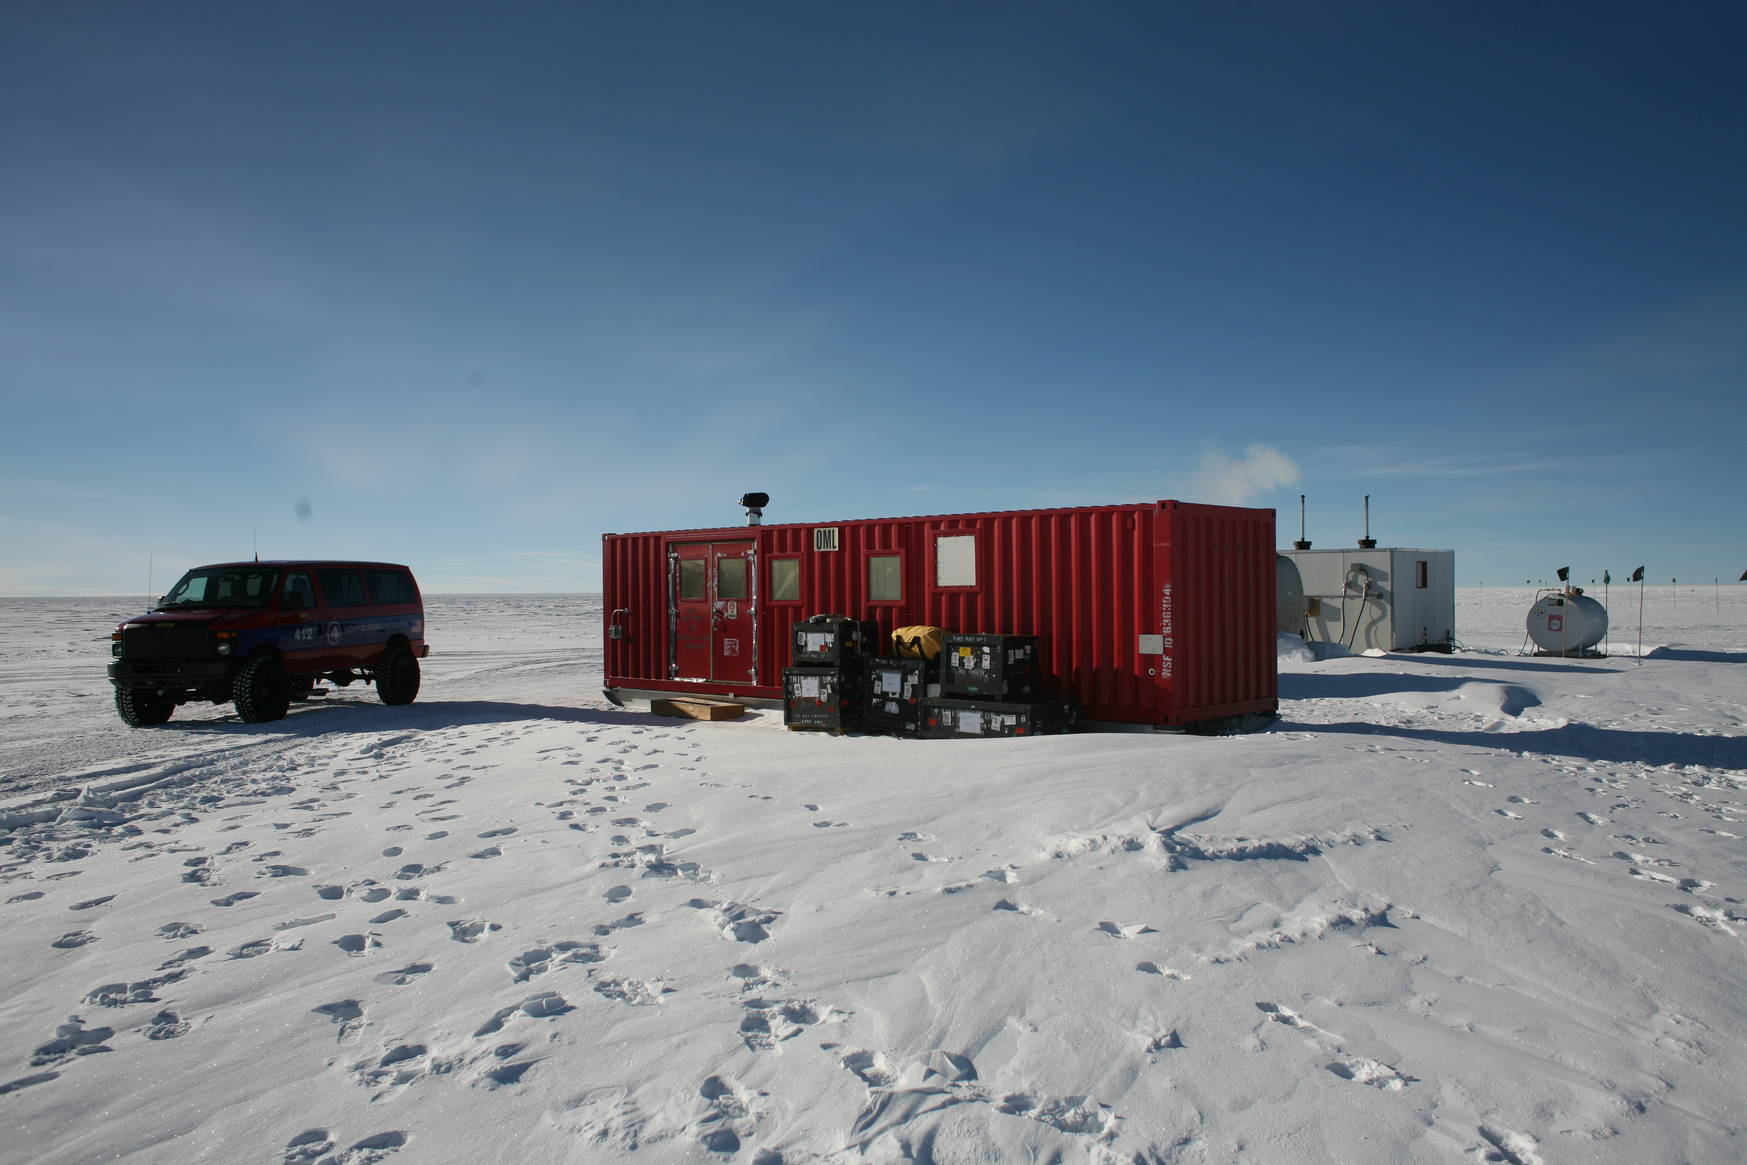 A container serves as a visitor centre and as a room to warmp up in. Behind the visitor centre is a container housing a camping toilet, and a generator station.